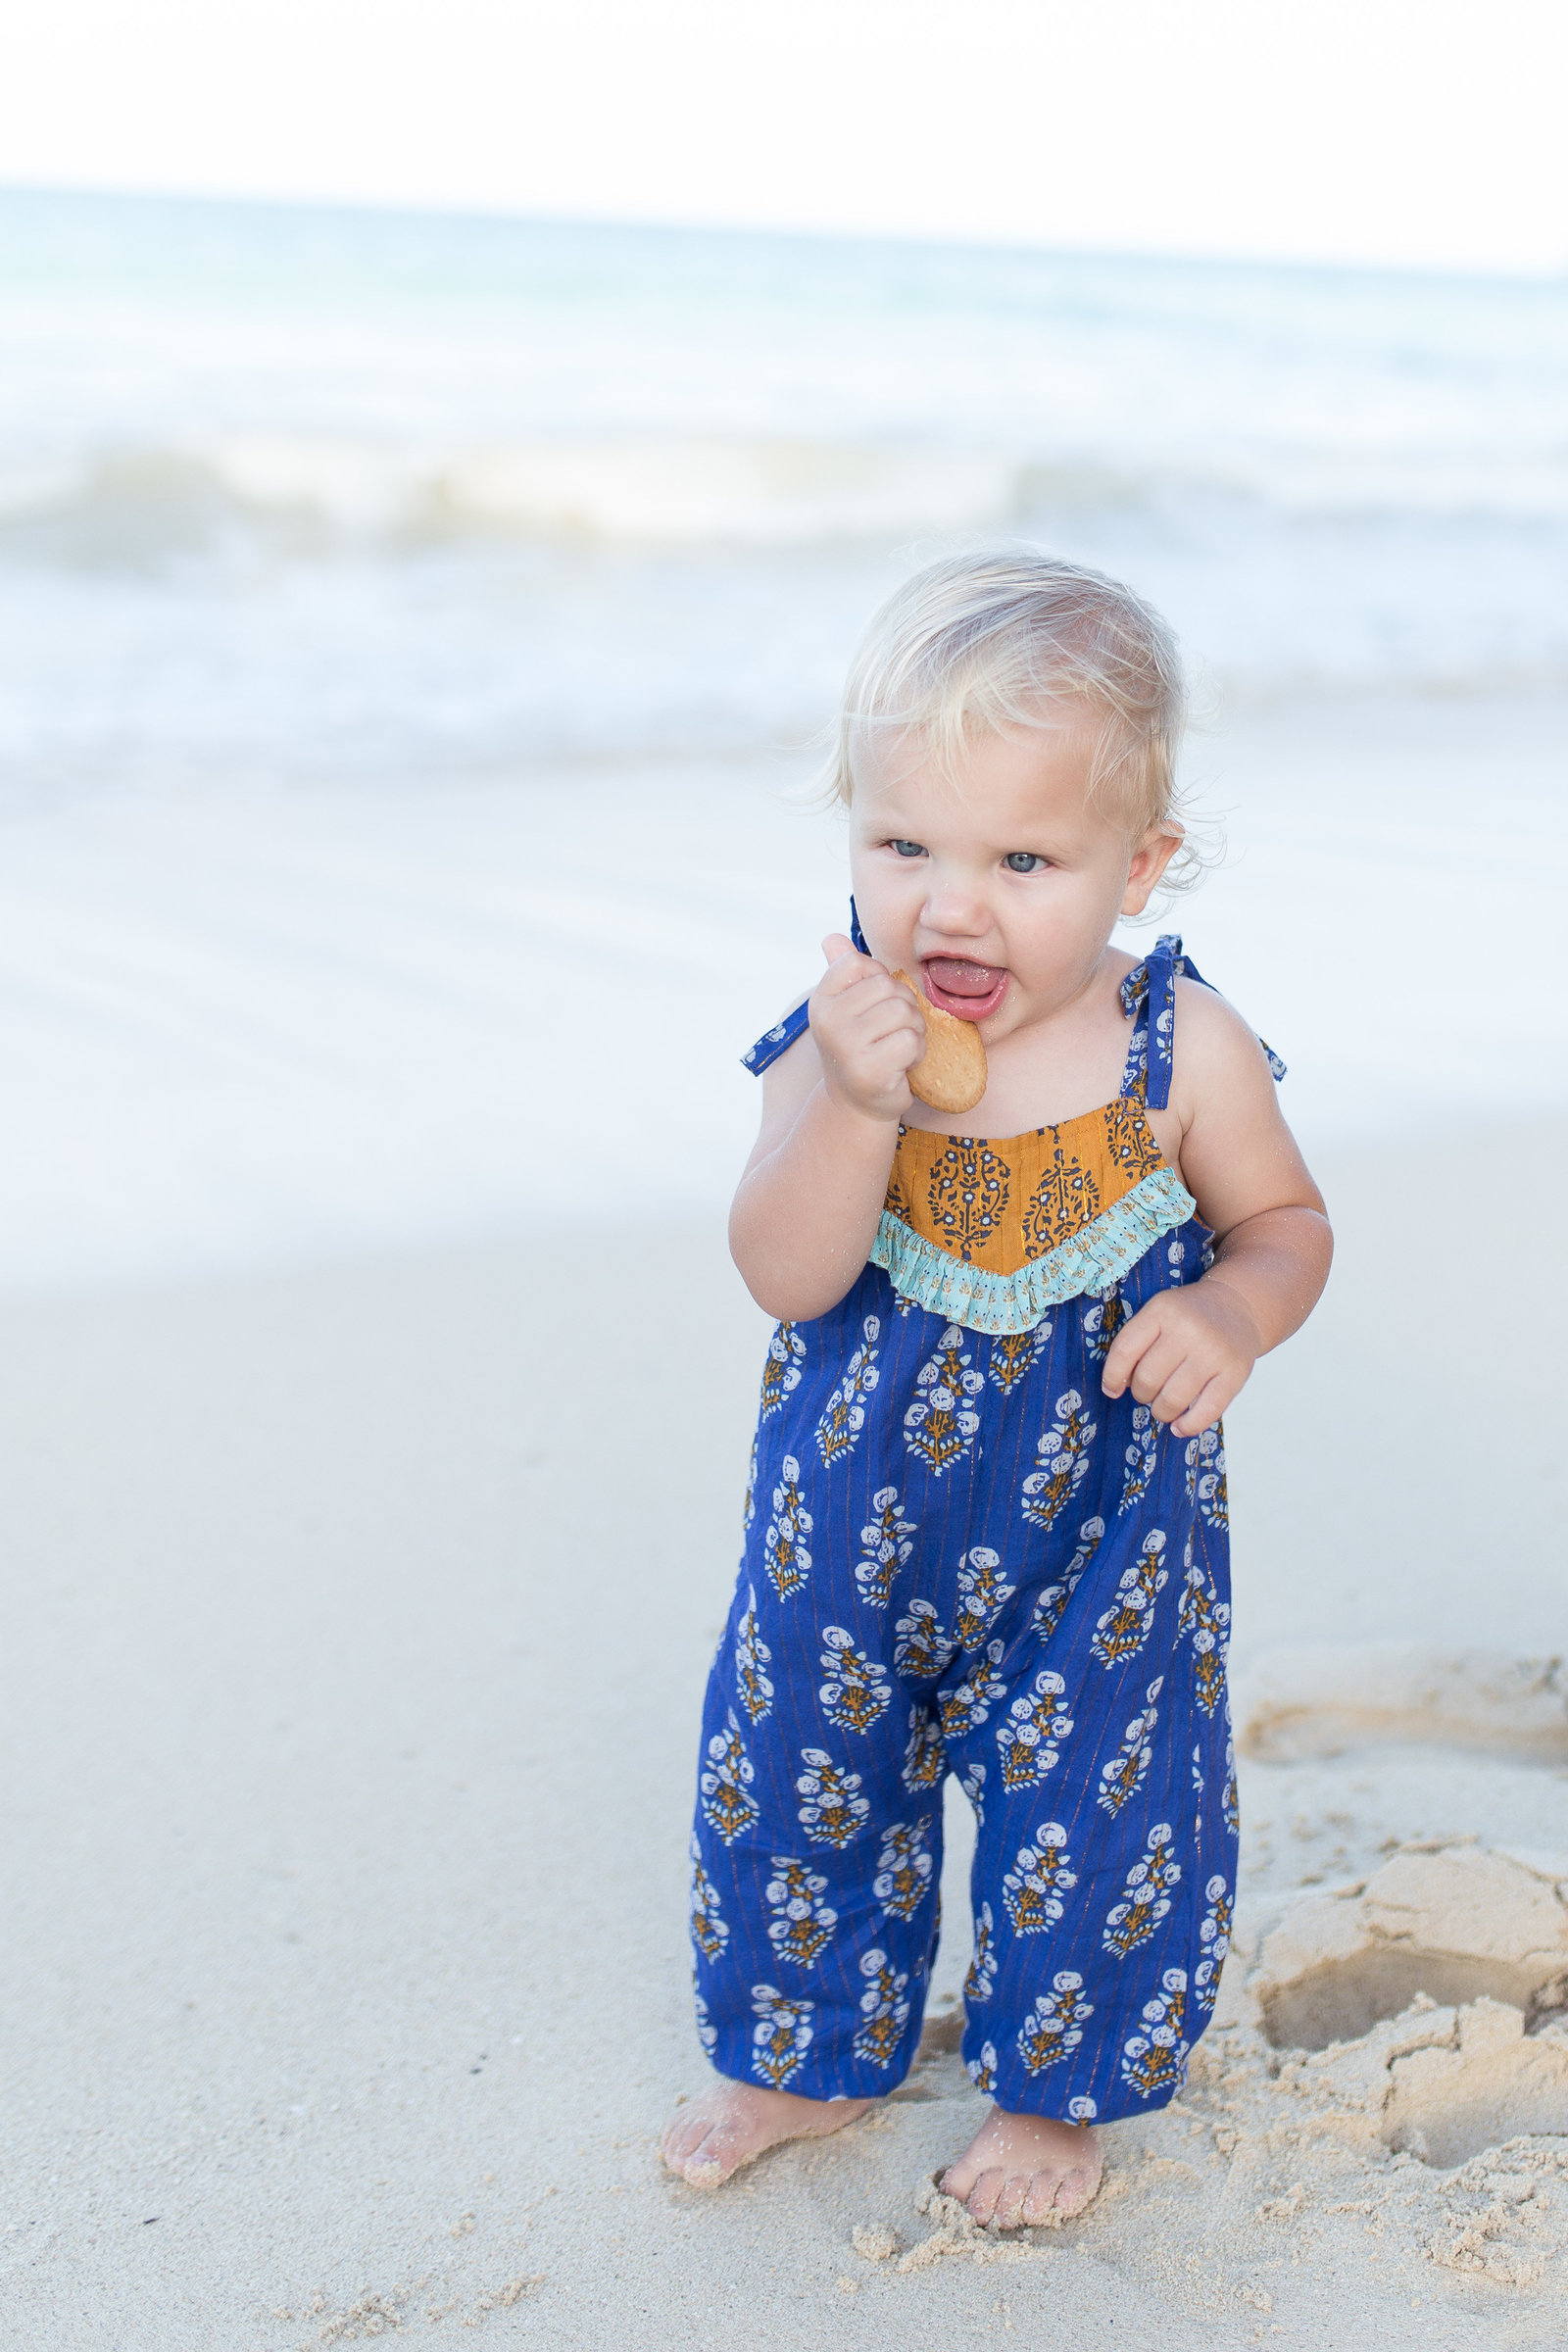 Oahu, Hawaii Lifestyle Photographer - Lifestyle Photography - Brooke Flanagan Photography - Little girl in blue on the beach